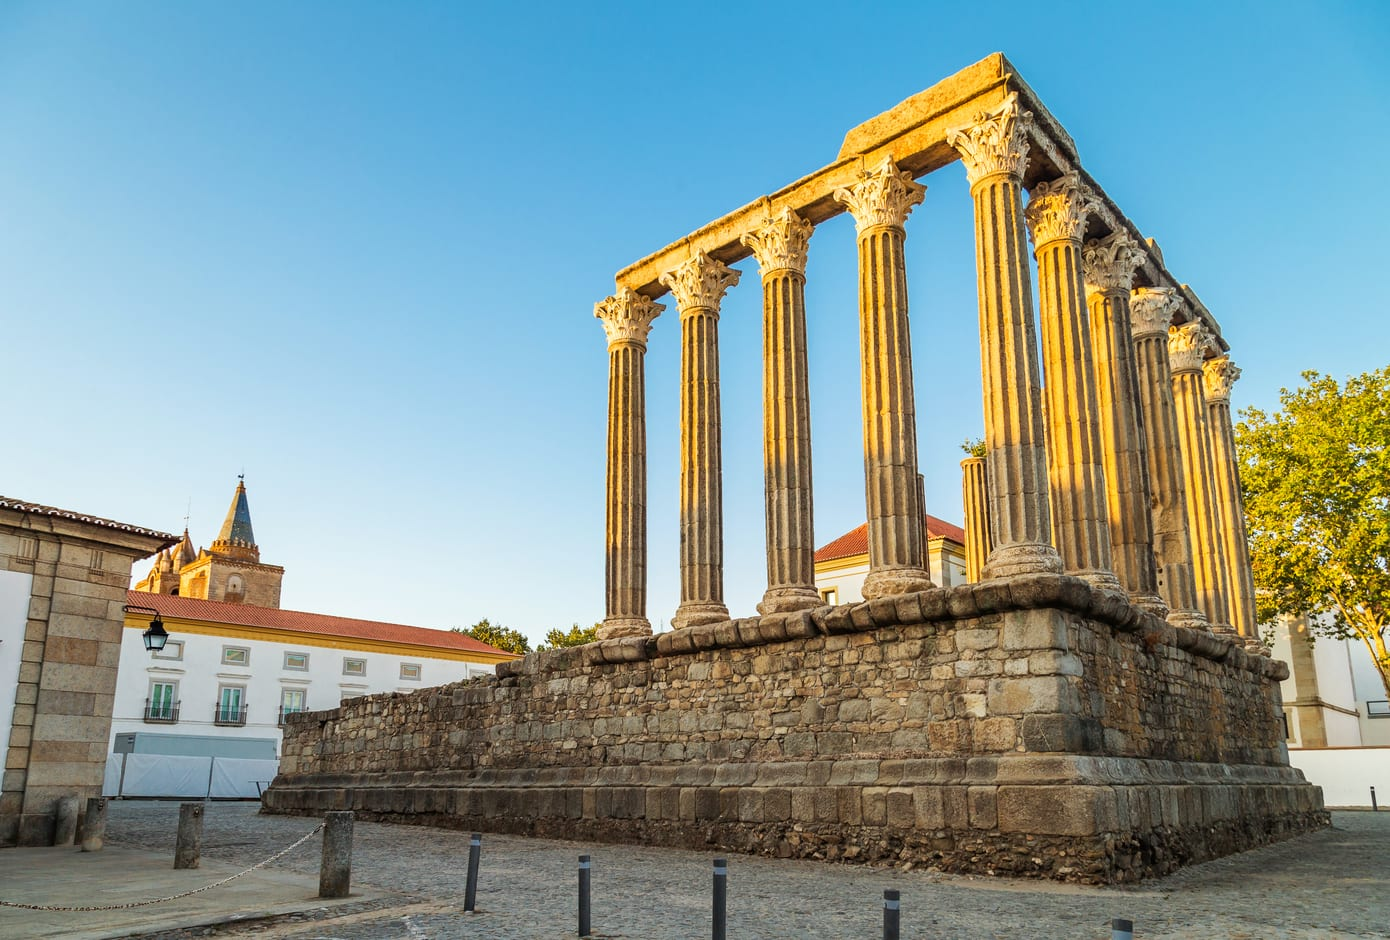 The Roman Temple of Évora, also referred to as the Templo de Diana.